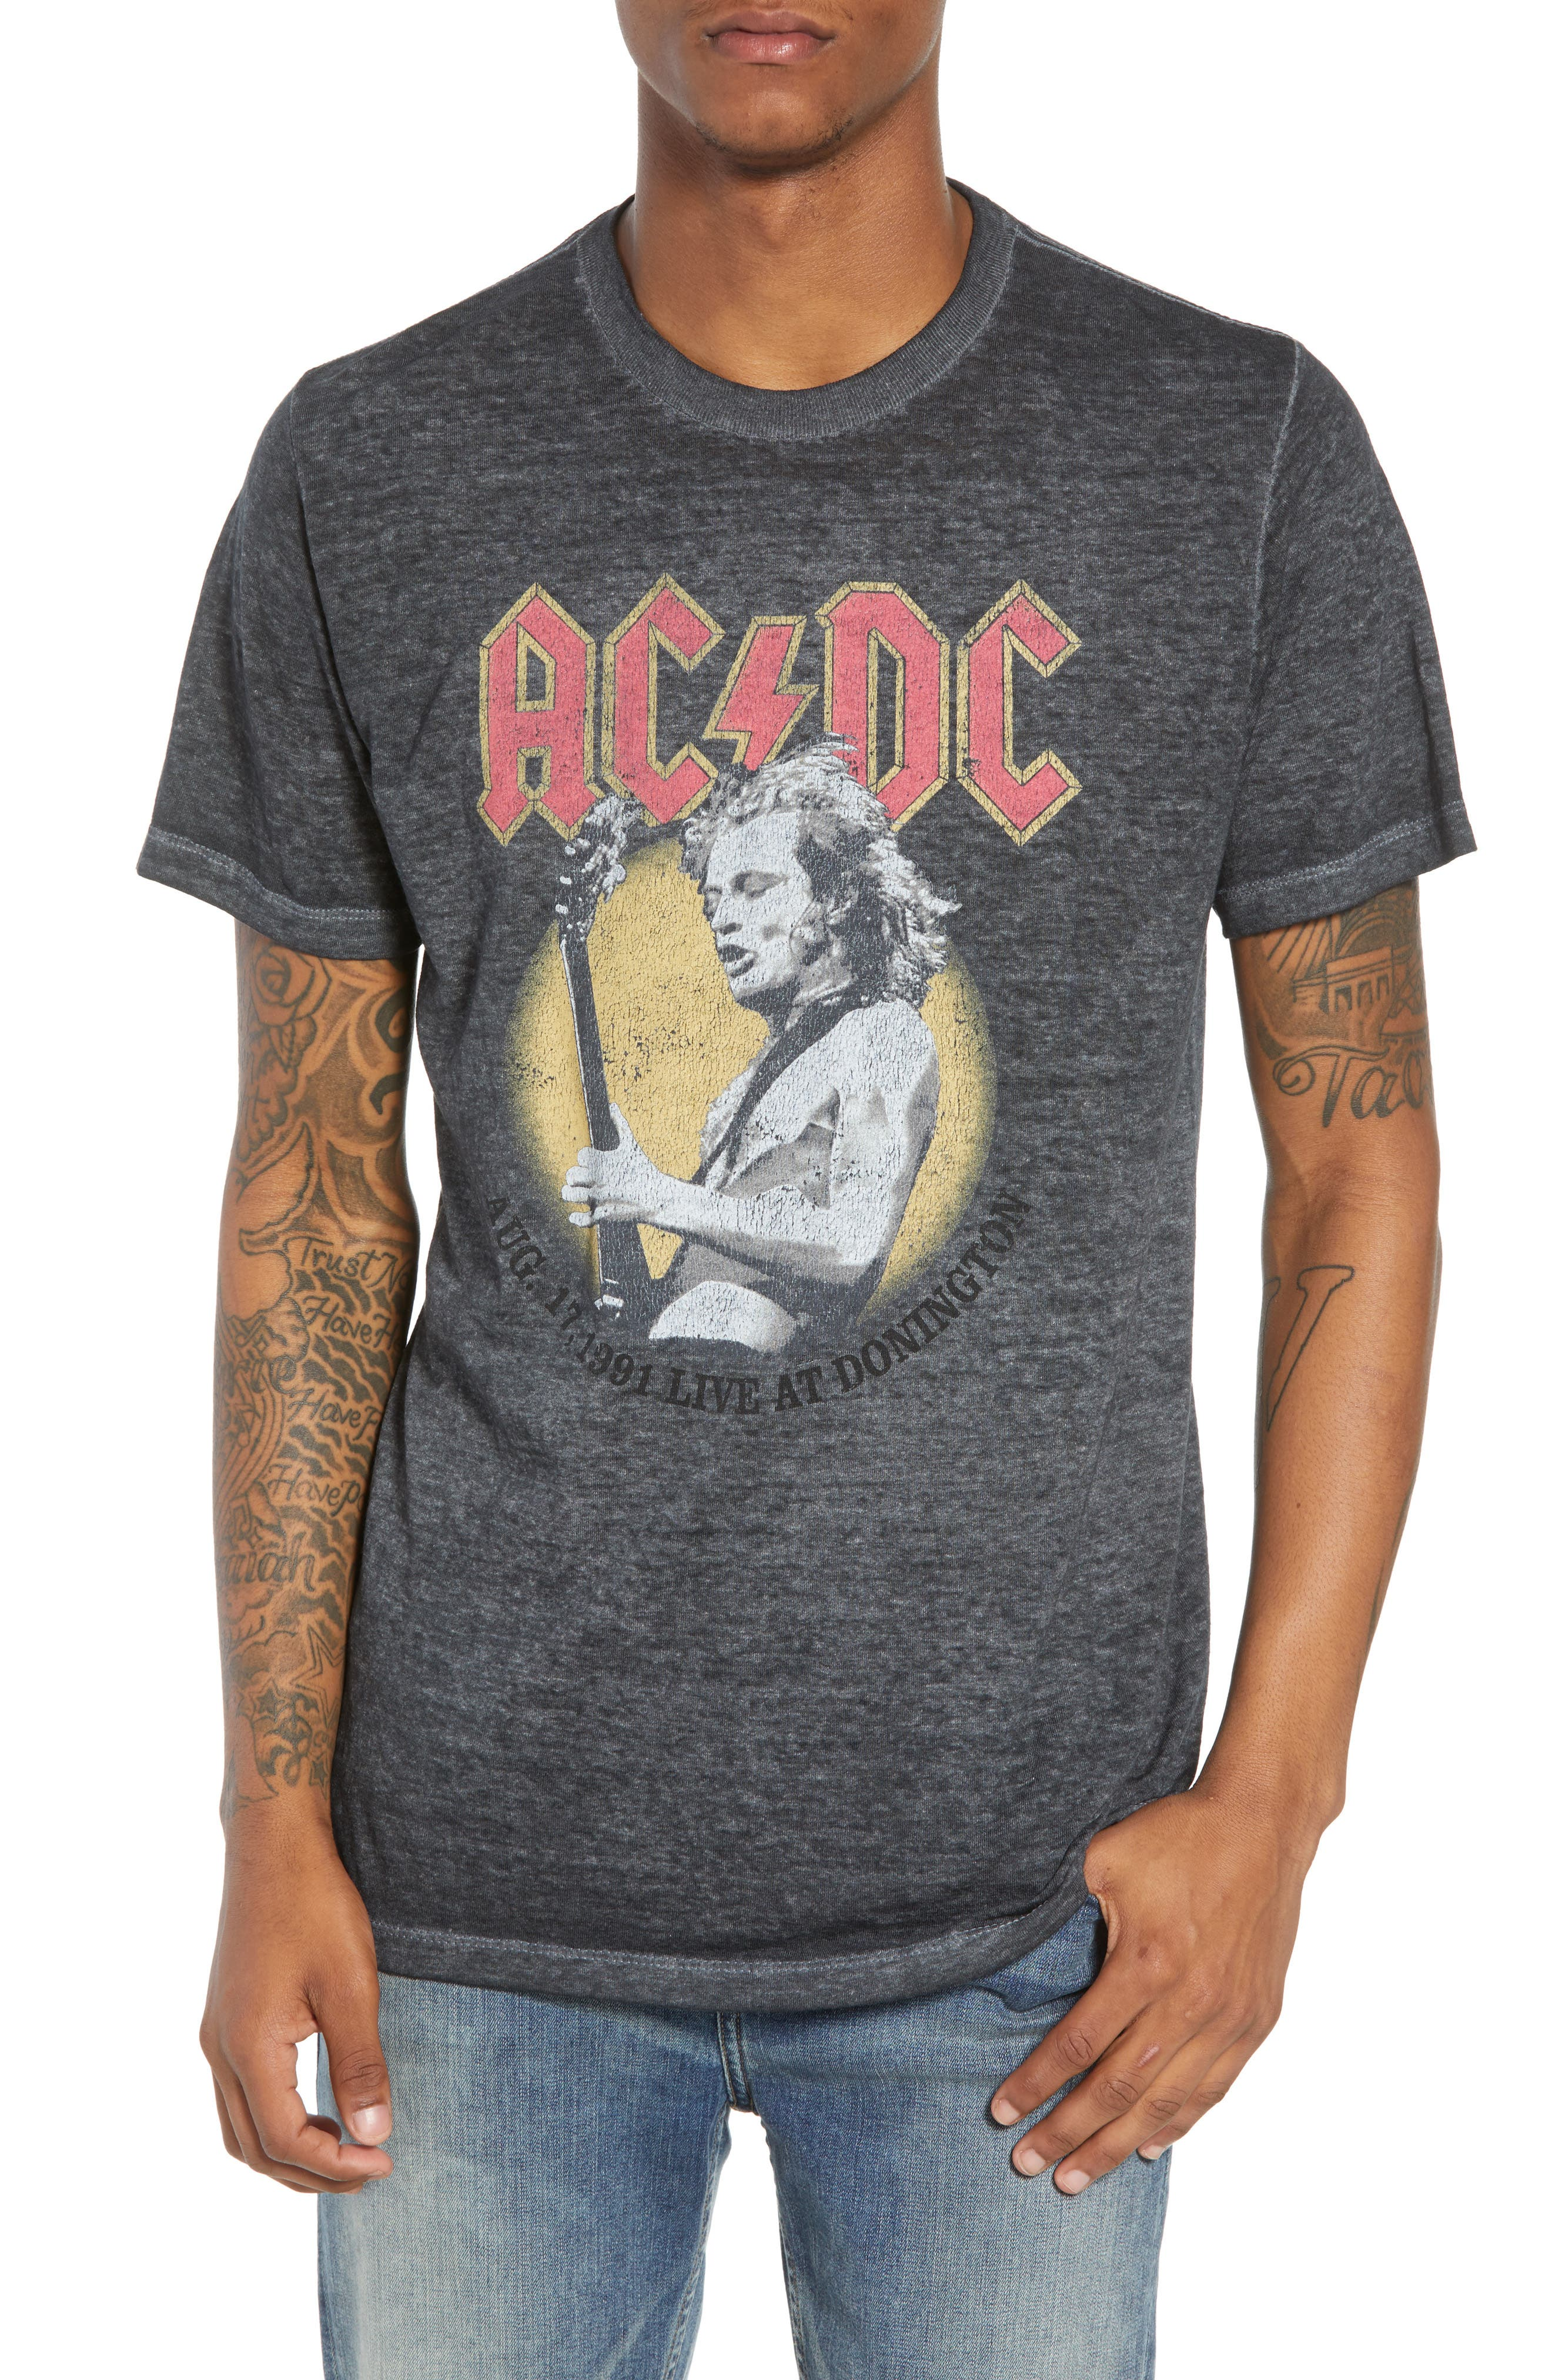 AC/DC Live at The Donington T-Shirt,                         Main,                         color, 030